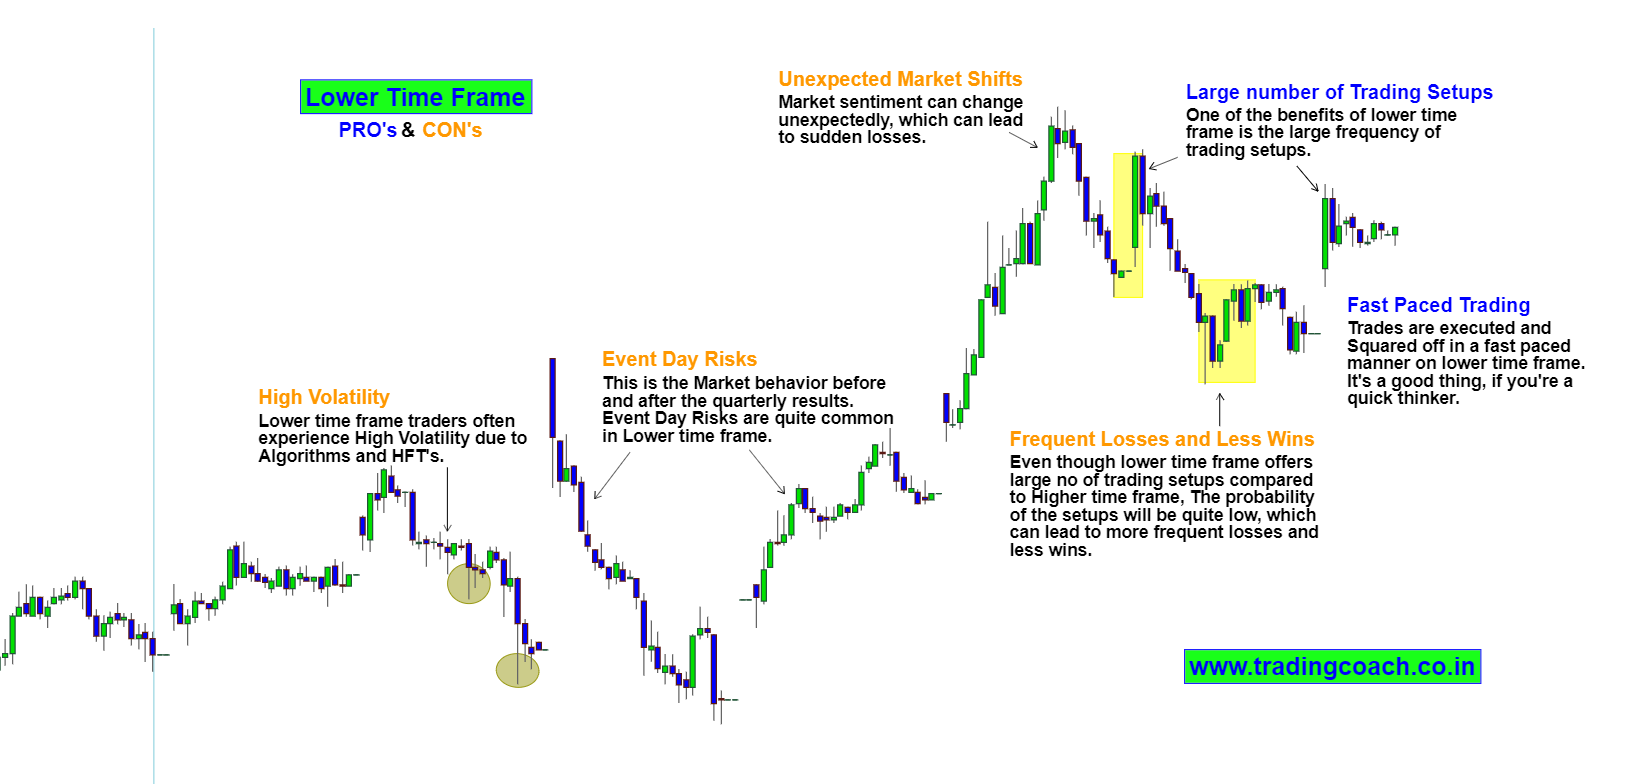 Trading in Lower Time frame